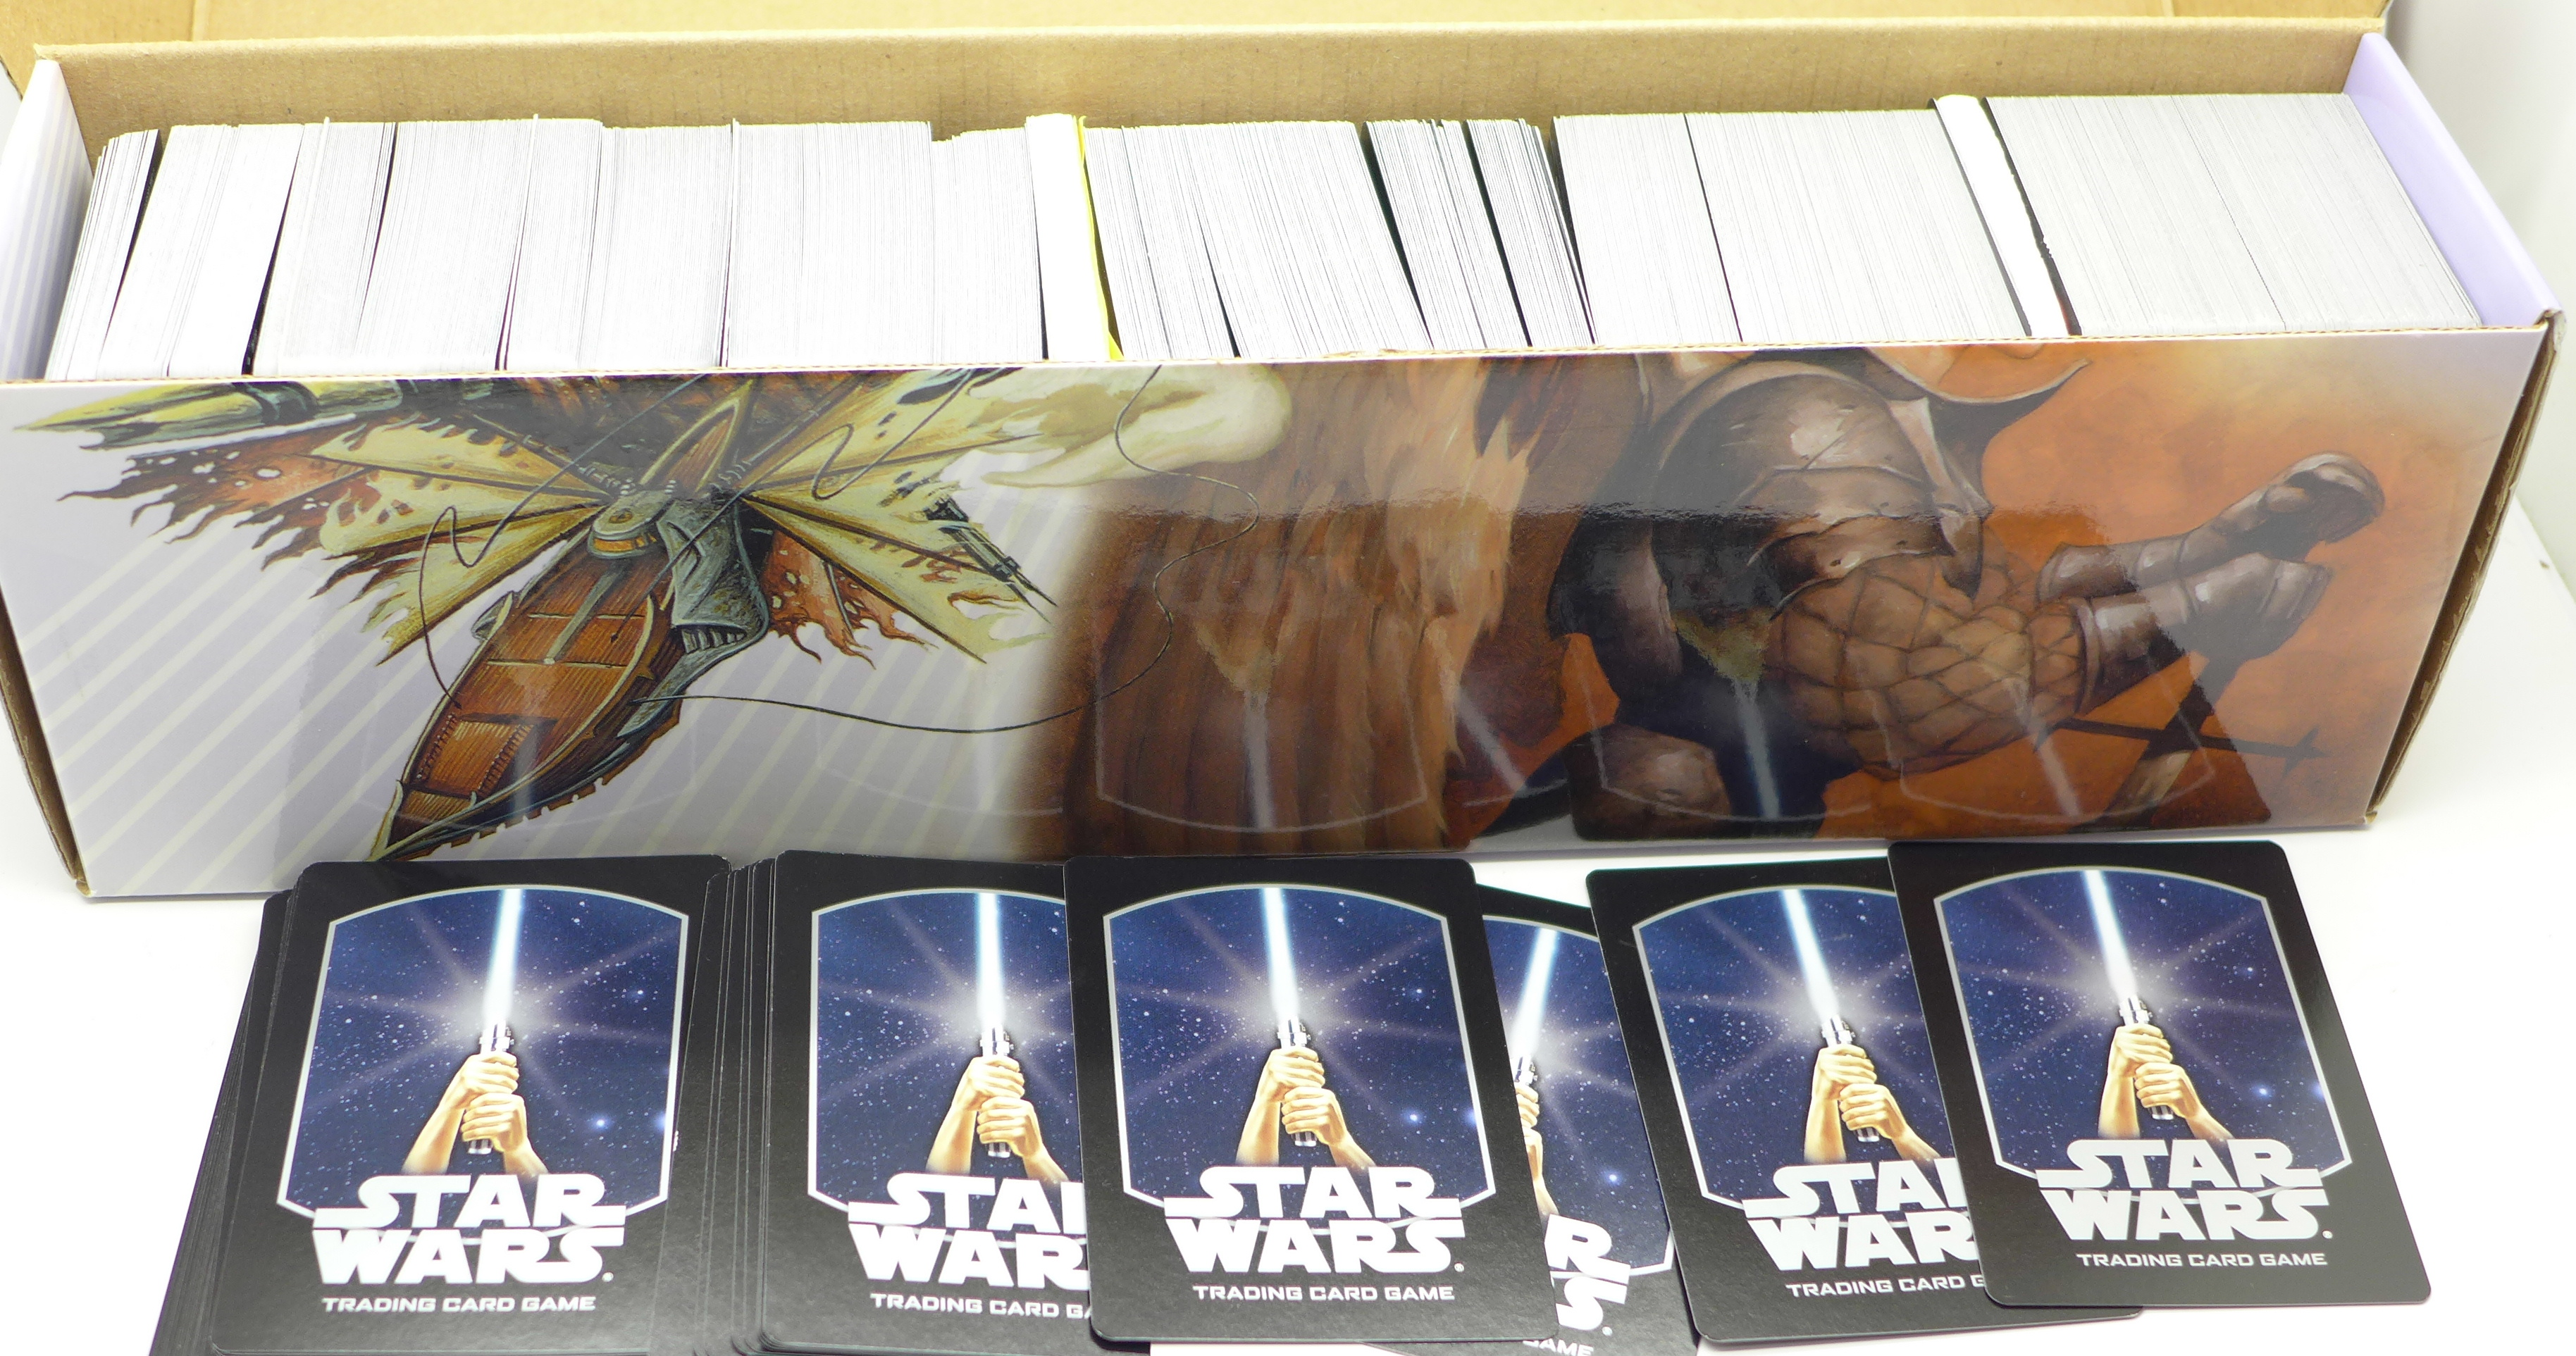 Lot 649 - A large collection of Star Wars trading card game cards